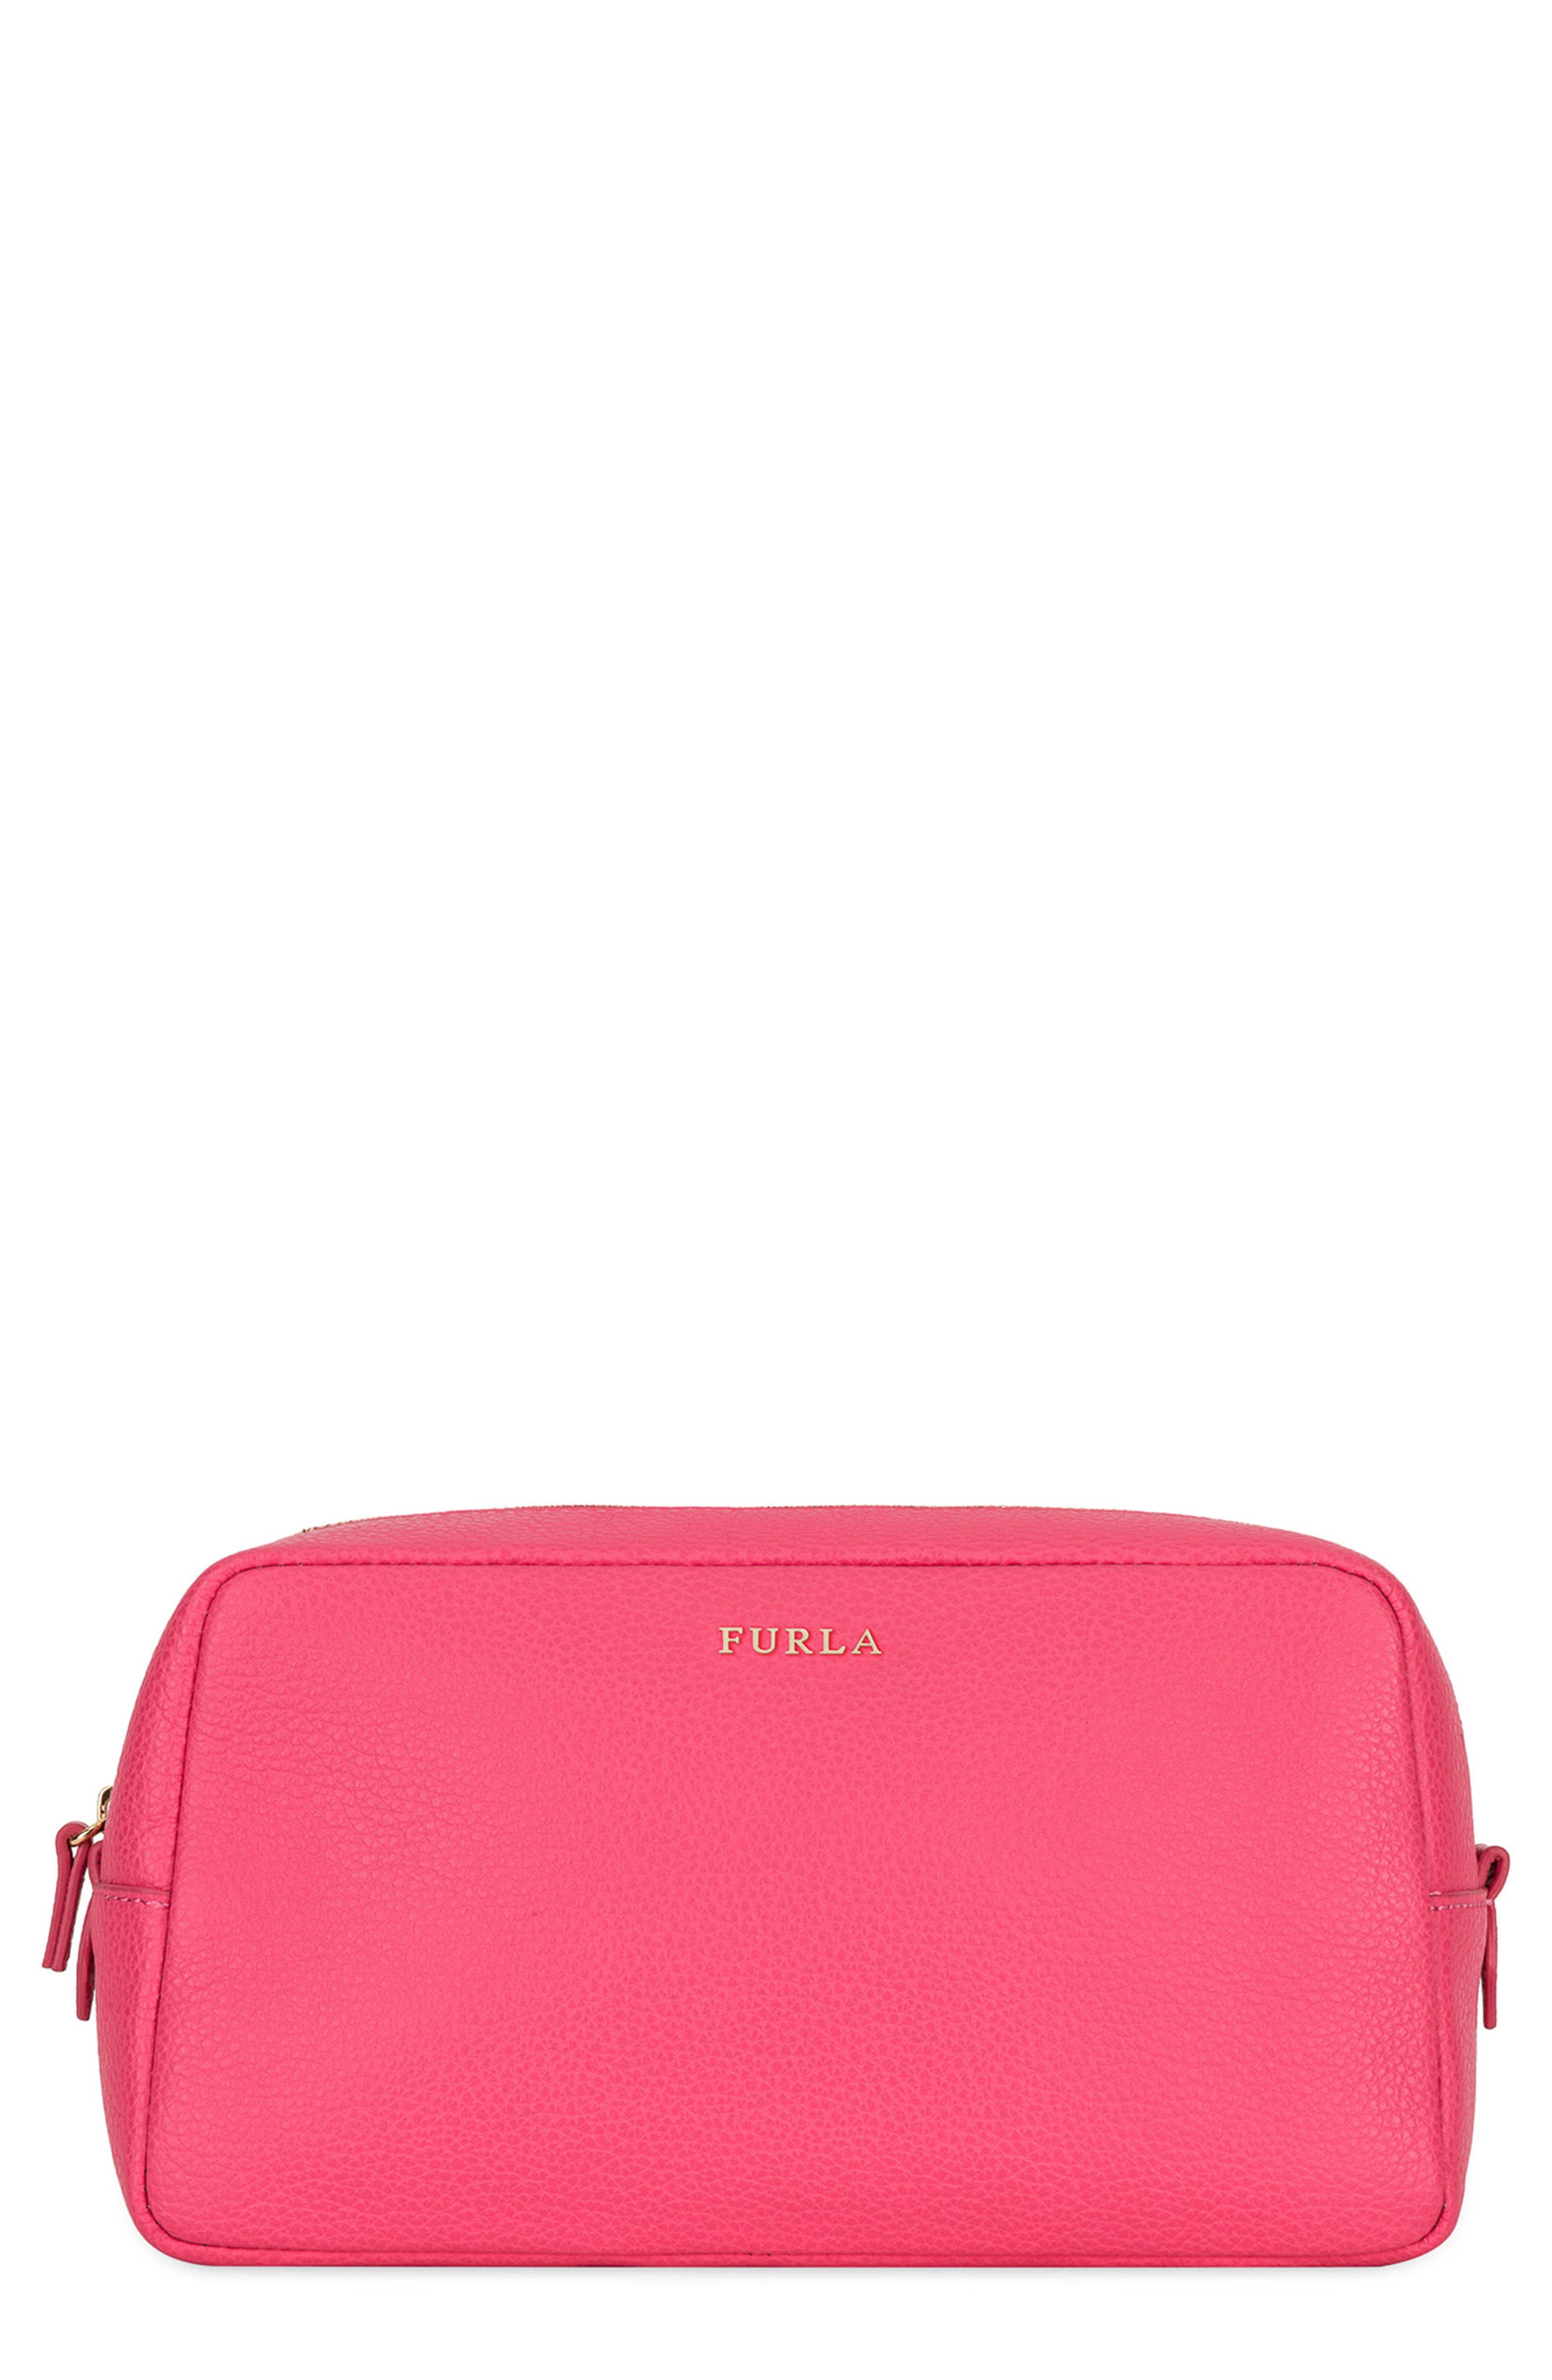 Bloom Extra Large Leather Cosmetic Bag,                         Main,                         color,